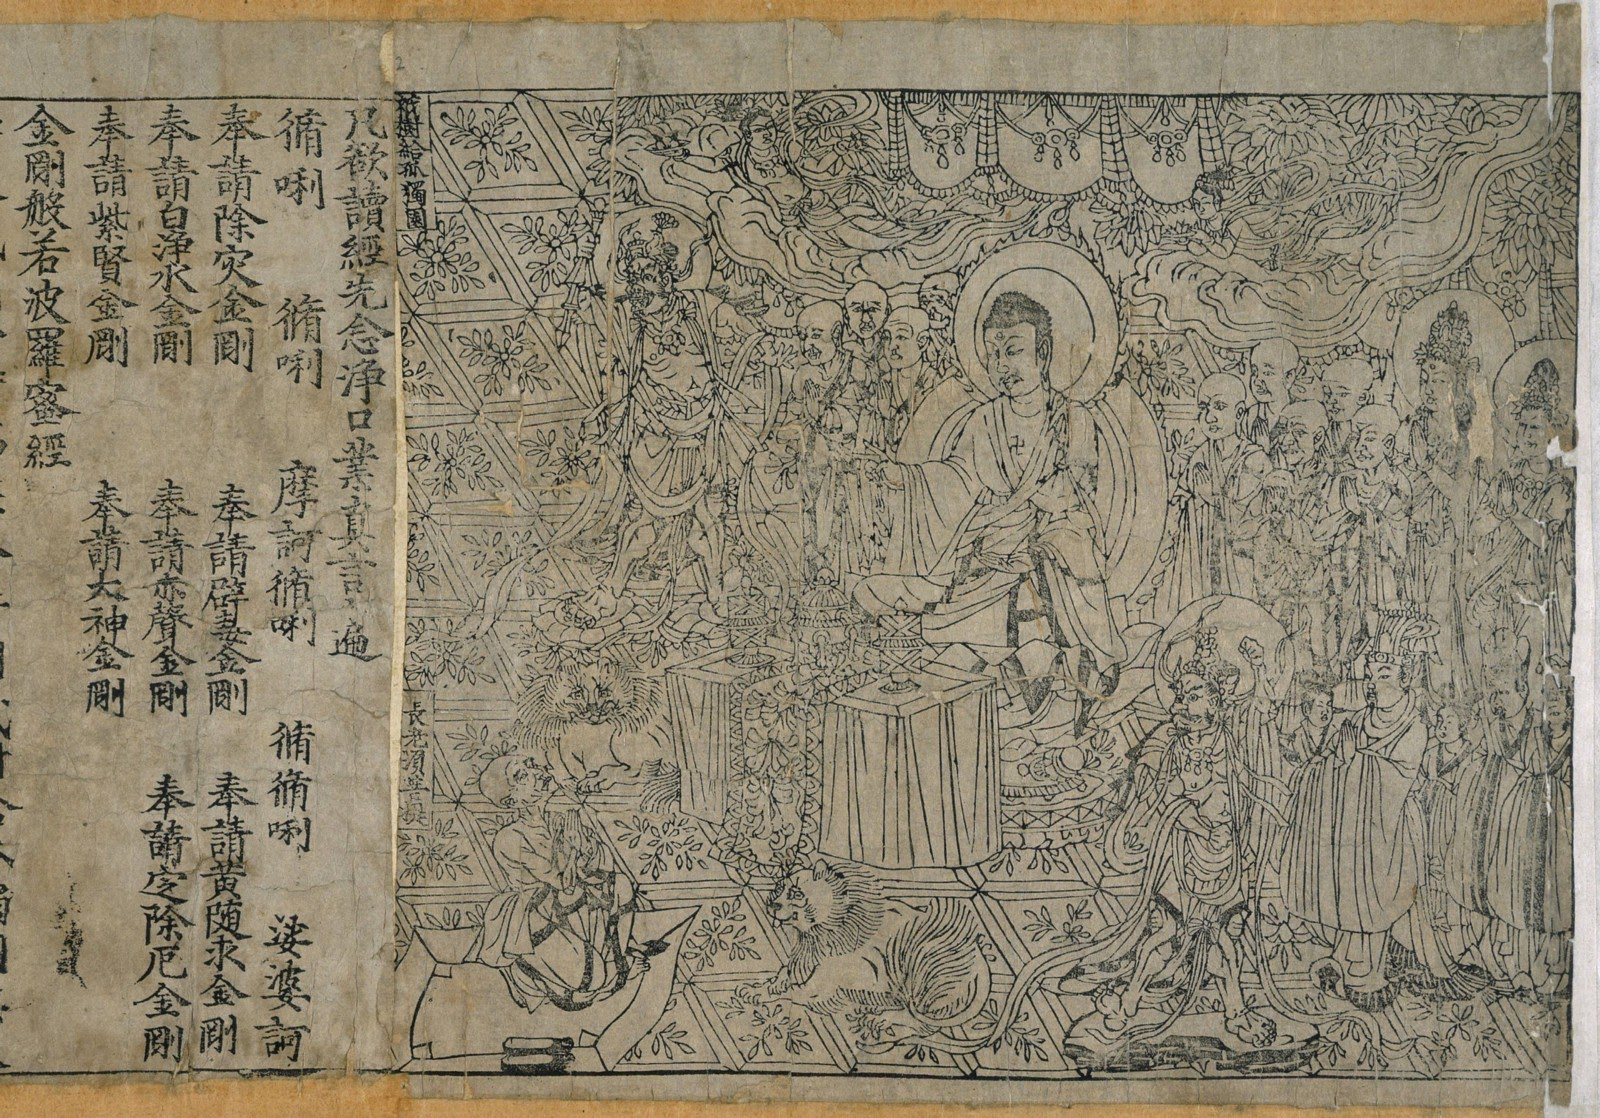 The earliest example of the printed book, frontispiece of the Diamond Sutra from Tang-dynasty China, 868 AD